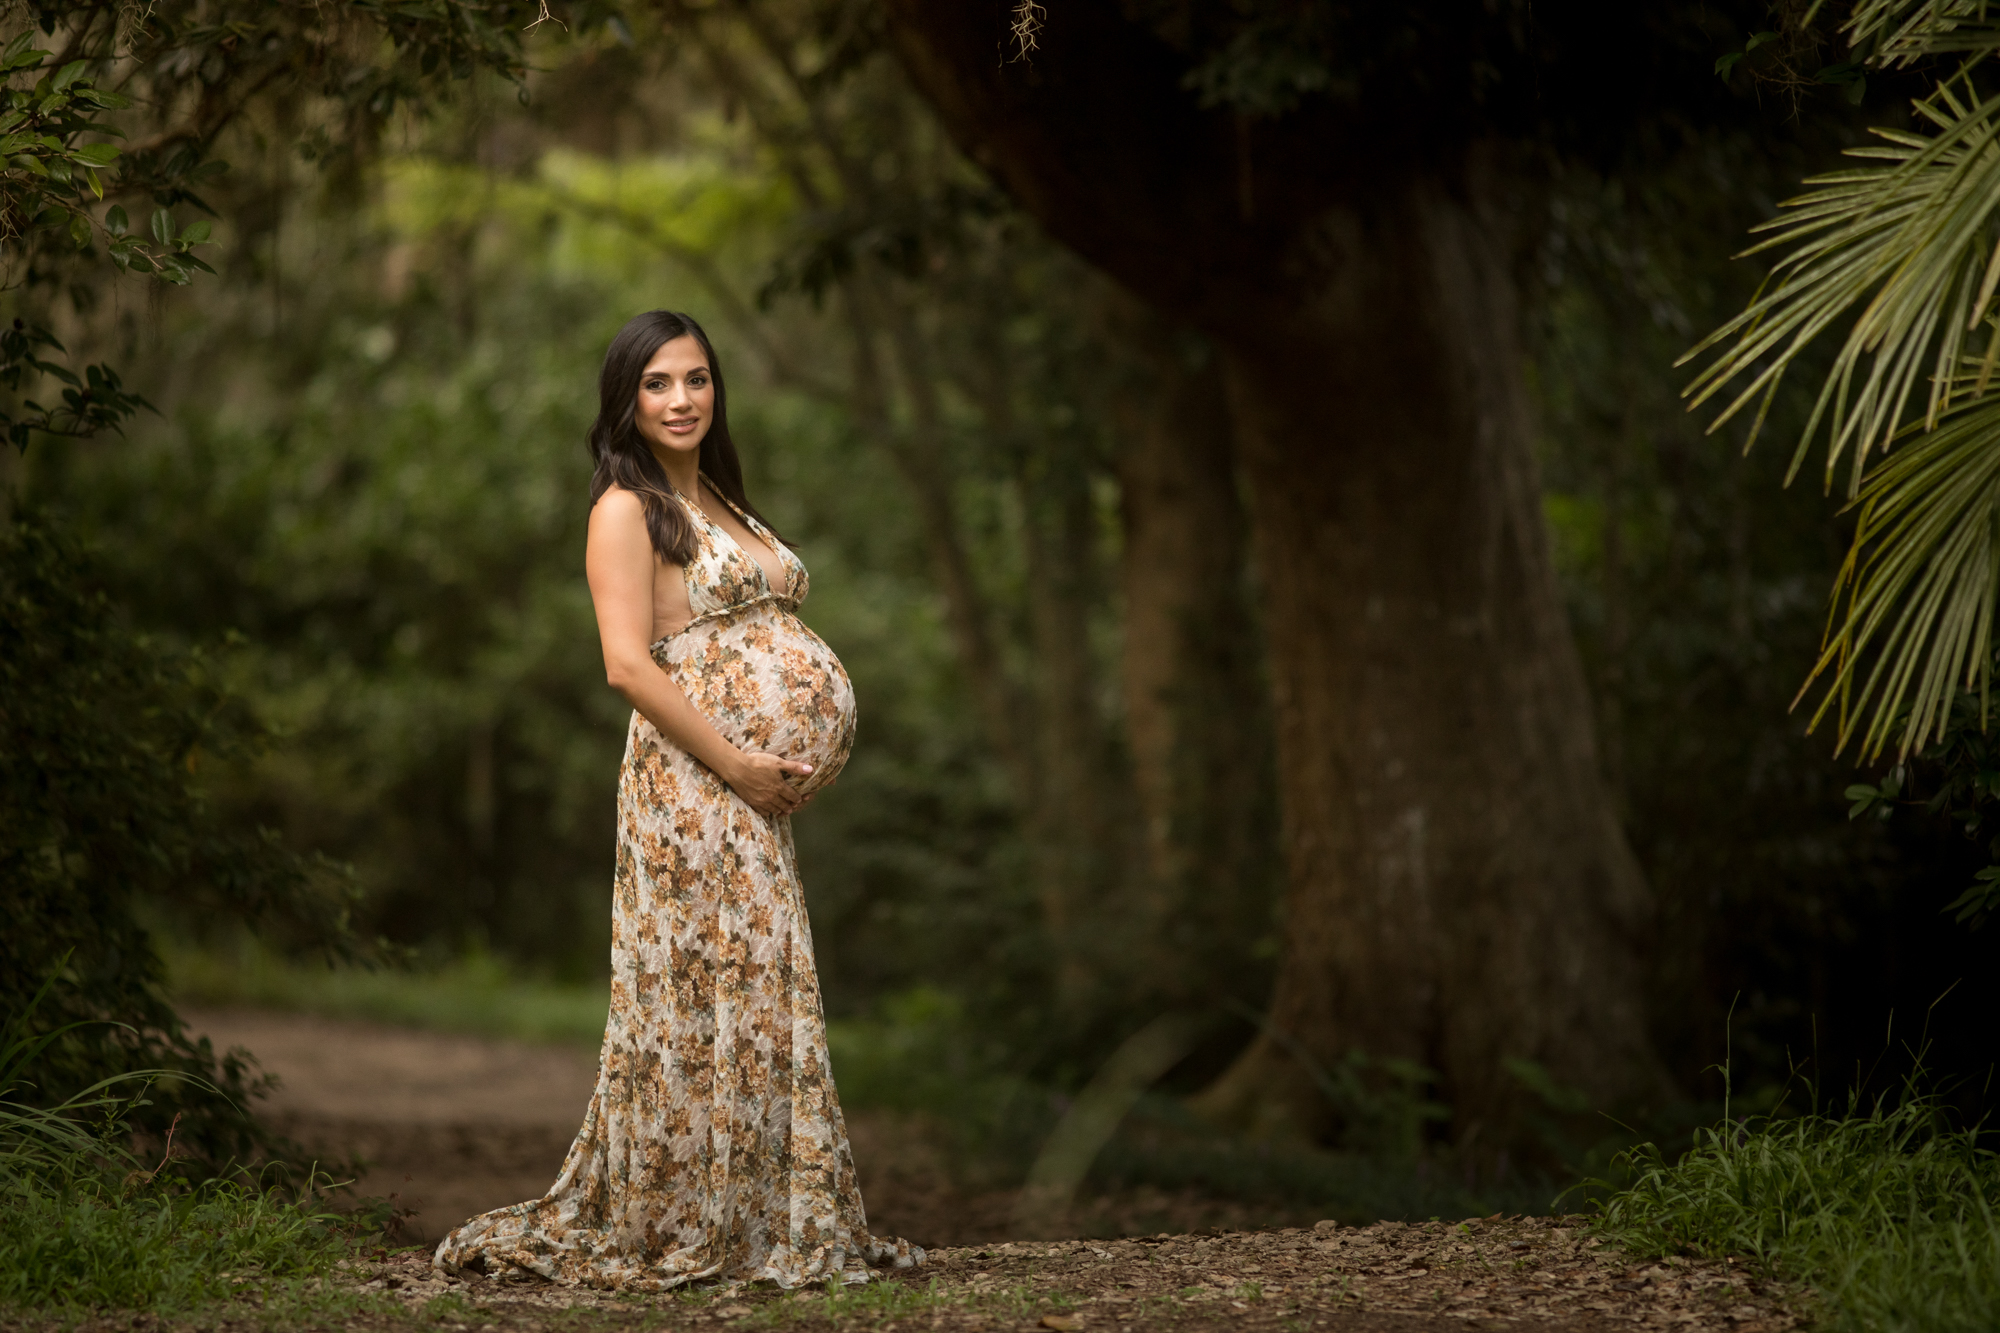 photo of a pregnant woman in a yellow lace maternity gown